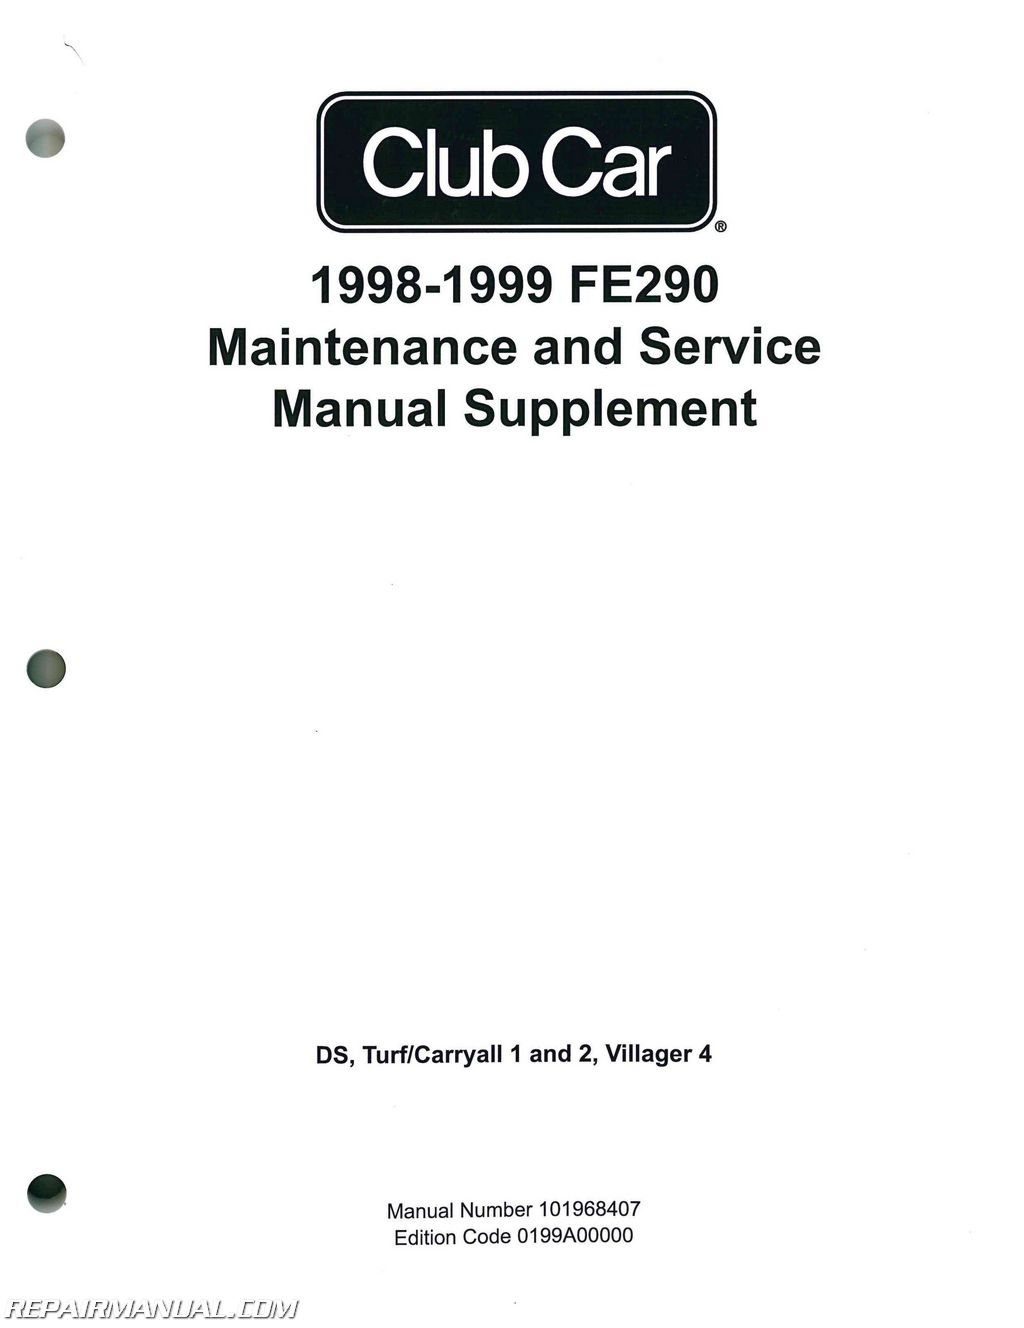 Club Car Fe290 Maintenance And Service Manual